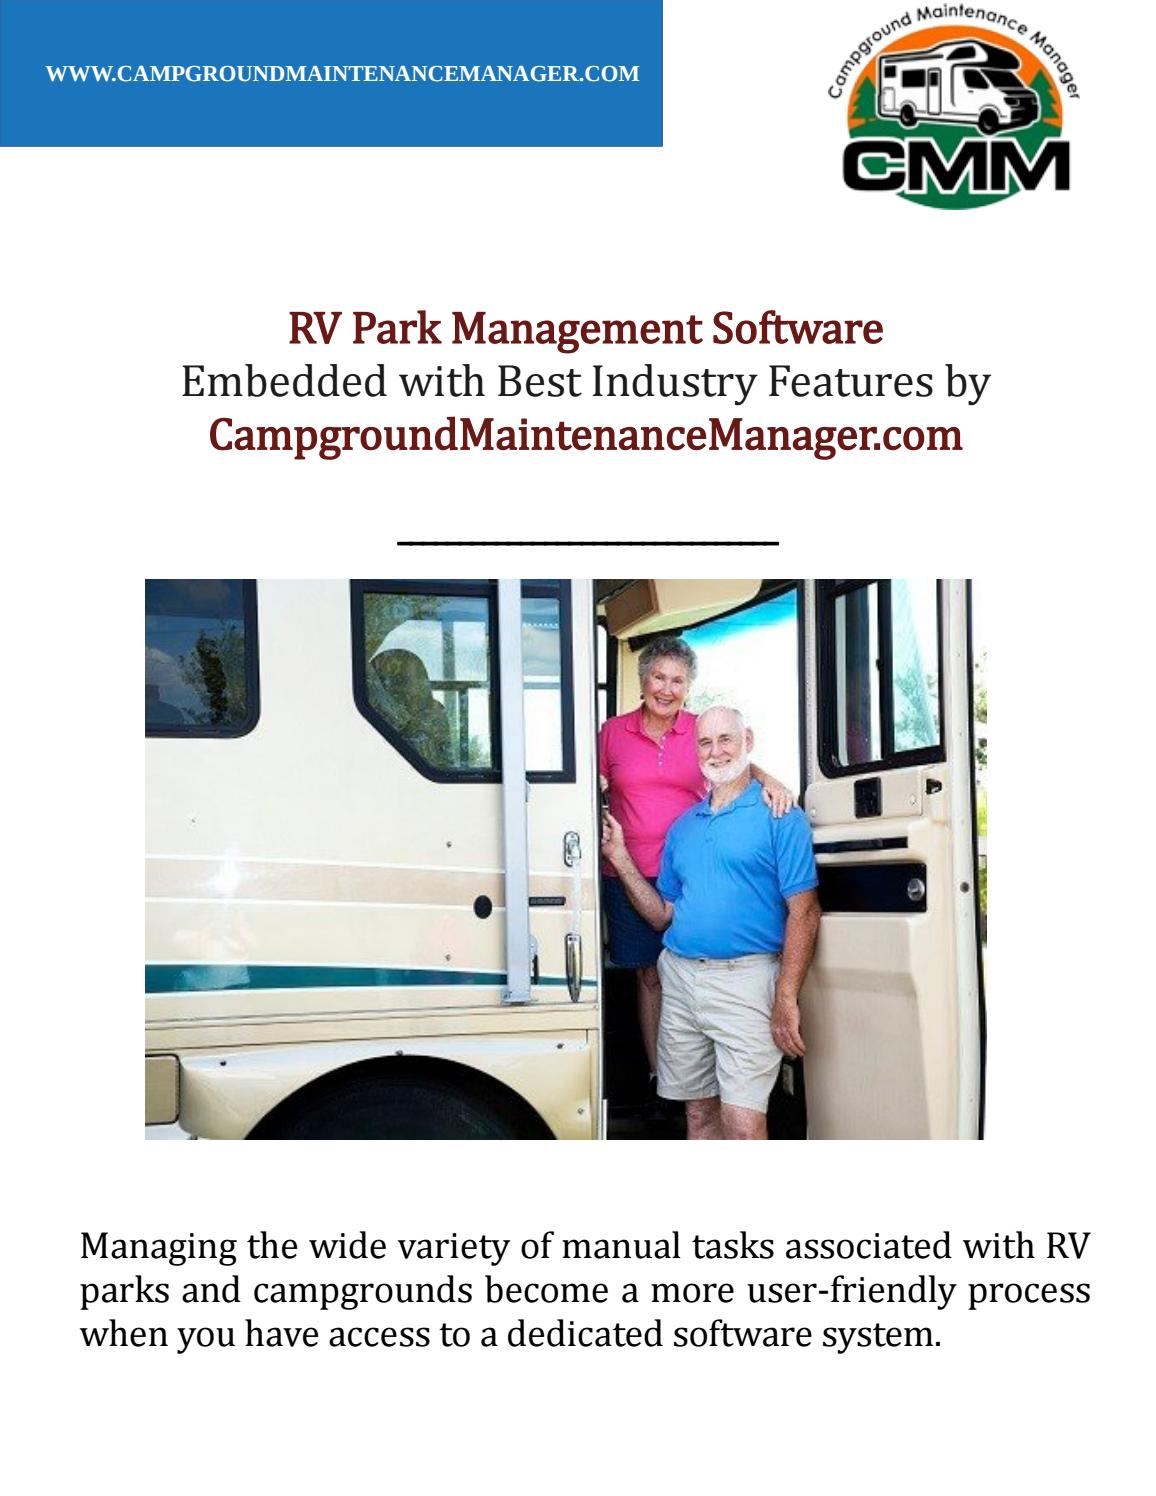 RV Park Management Software Embedded with Best Industry Features by CampgroundMaintenanceManager.com